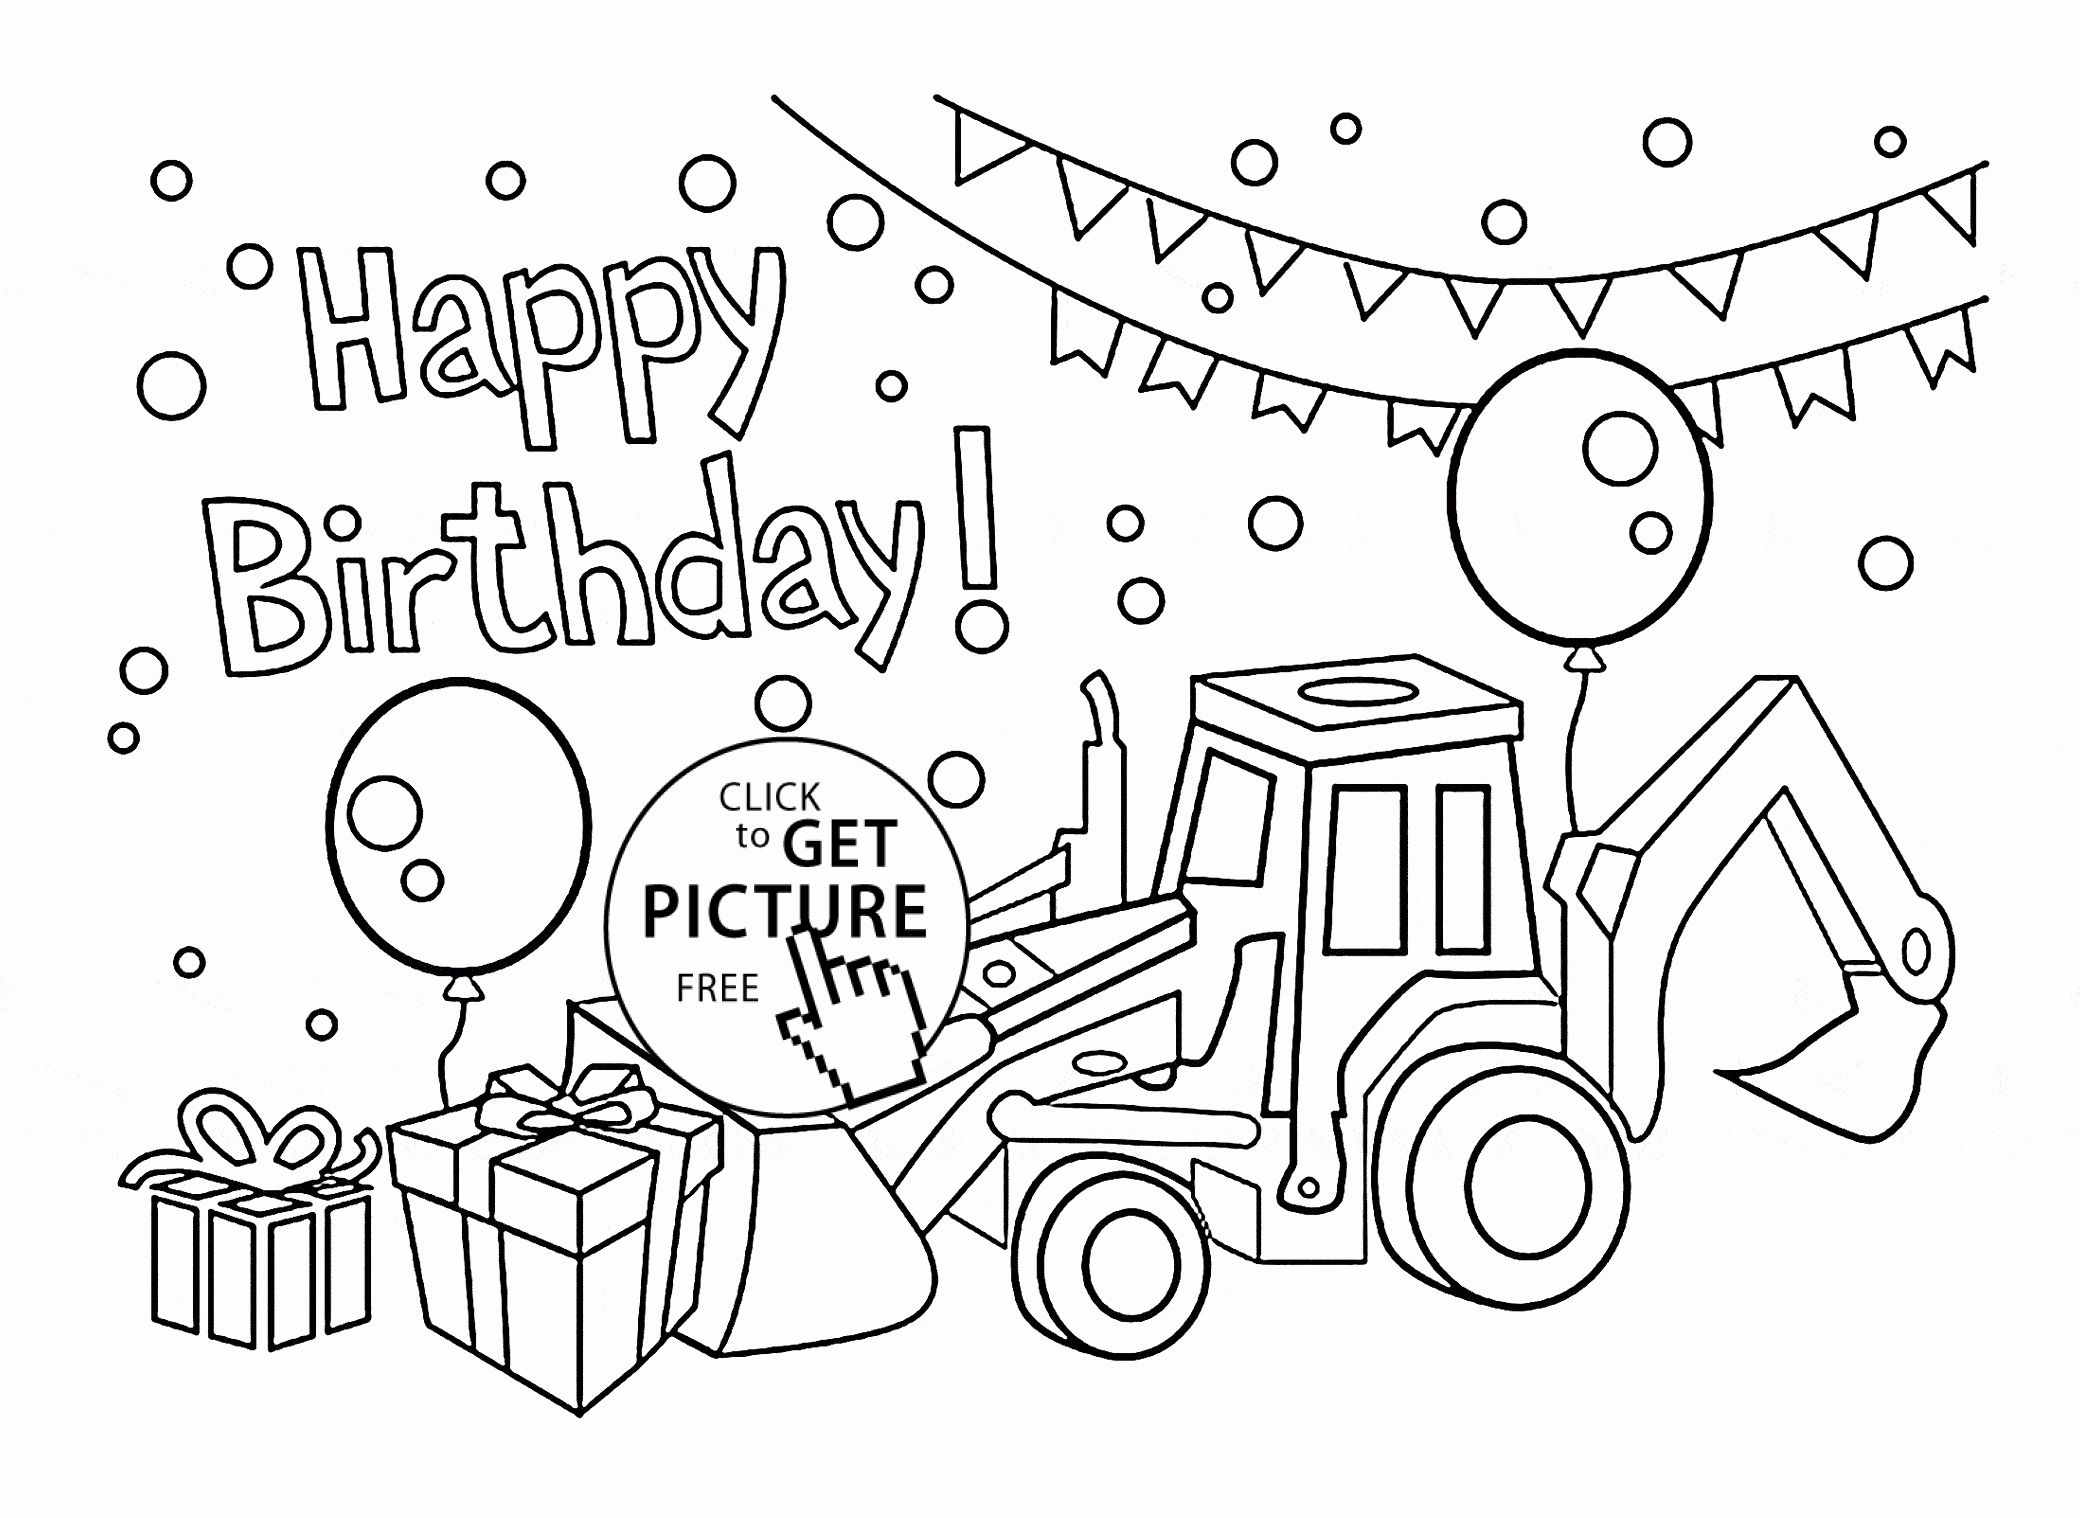 Birthday Card Coloring Page Lovely 42 Coloring Pages Cards Magnificent Coloring P Happy Birthday Coloring Pages Coloring Birthday Cards Coloring Pages For Boys